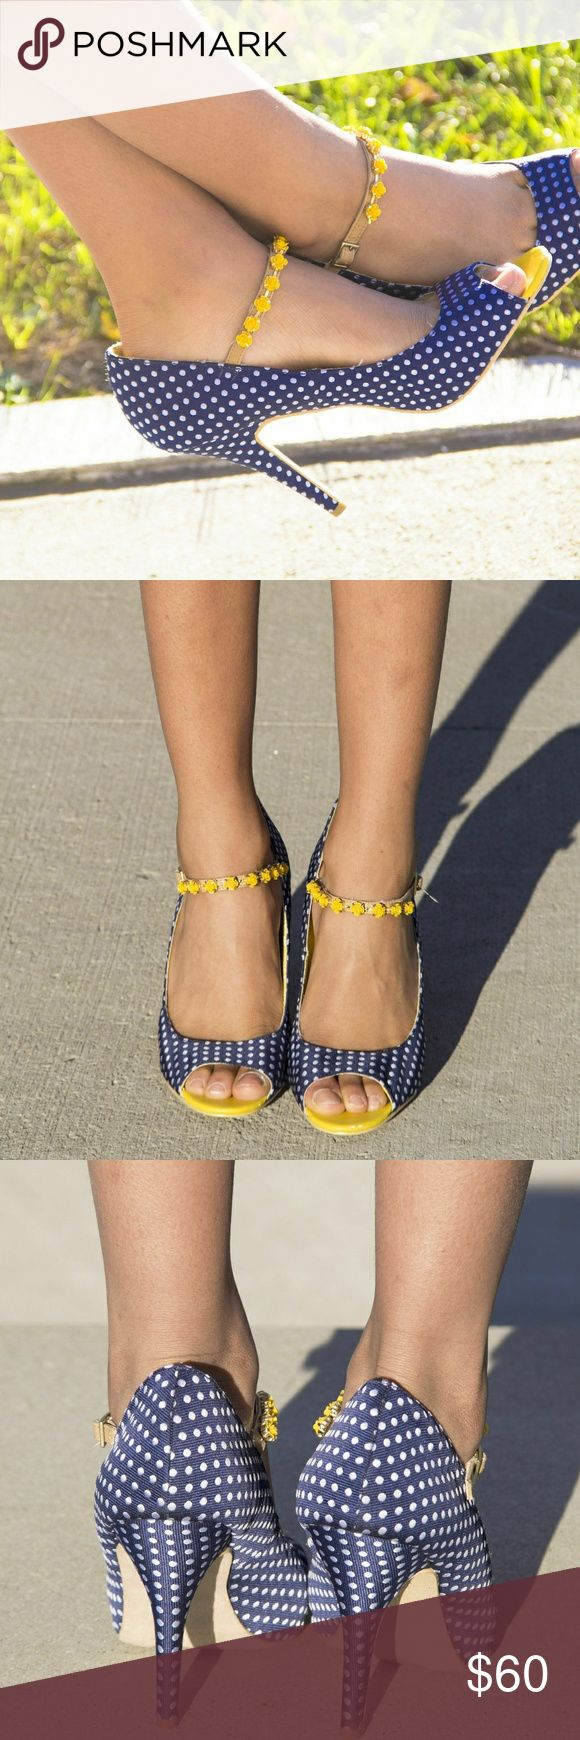 Not rated blue polka dot heels Blue Polka dot peep toe shoes. Has a yellow flowered ankle strap with gold hardware. Gives modern vintage vibes!! These beauties are 4in and have cushioned soles. Unique pair only worn in photos no box Not Rated Shoes Heels